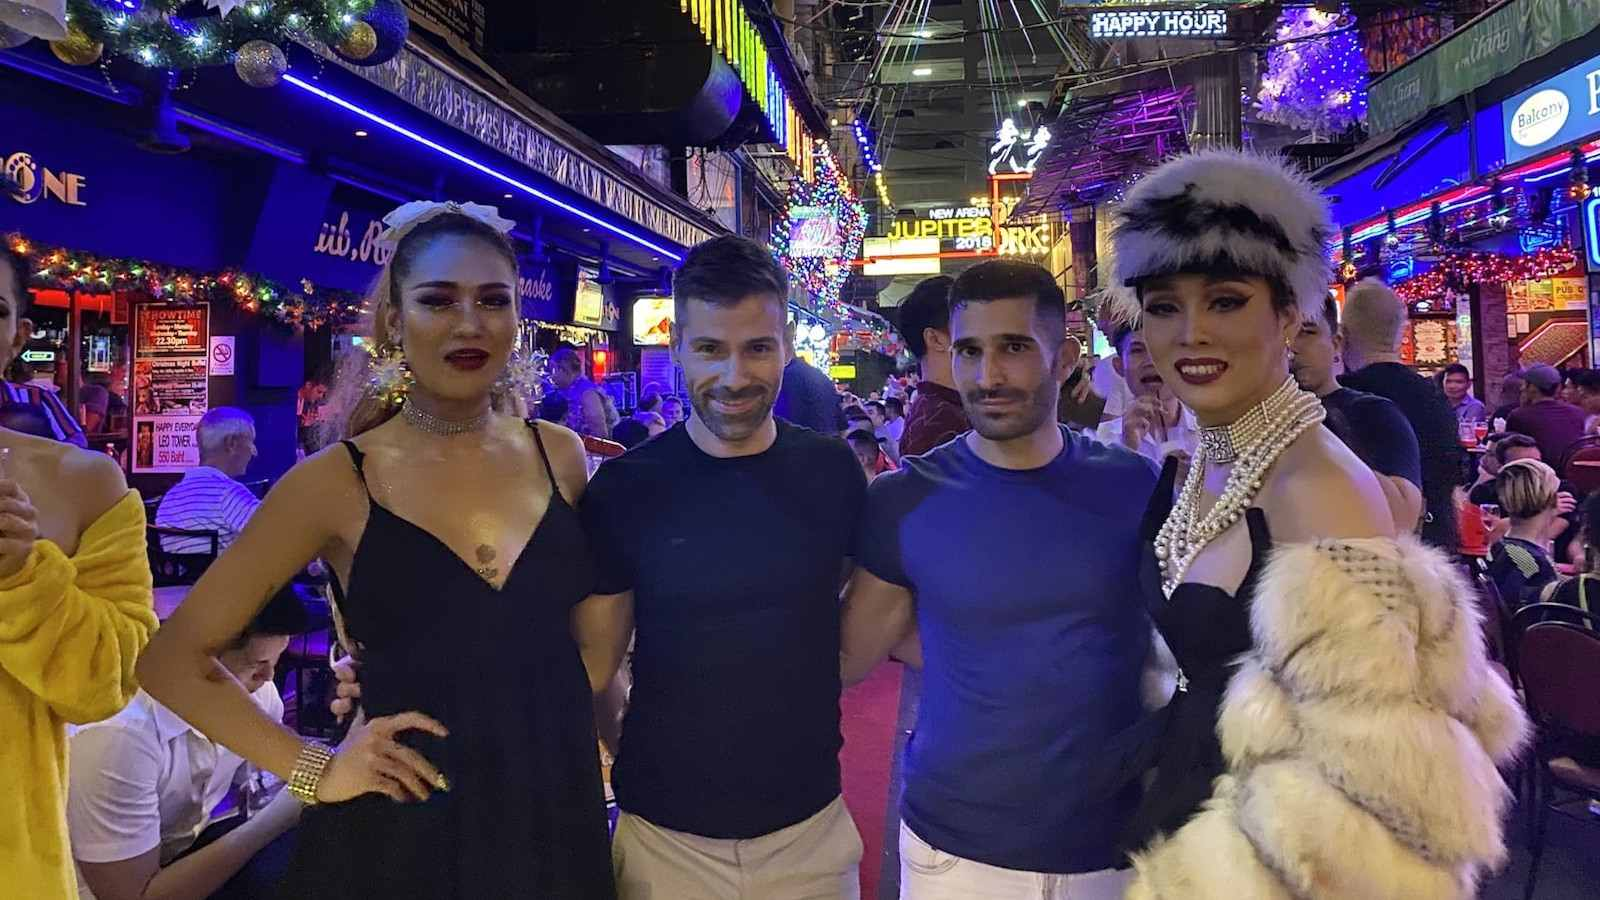 Bangkok's main gay area are the streets of Silom Soi 4 and Silom Soi 2 where there are lots of gay bars and clubs to enjoy